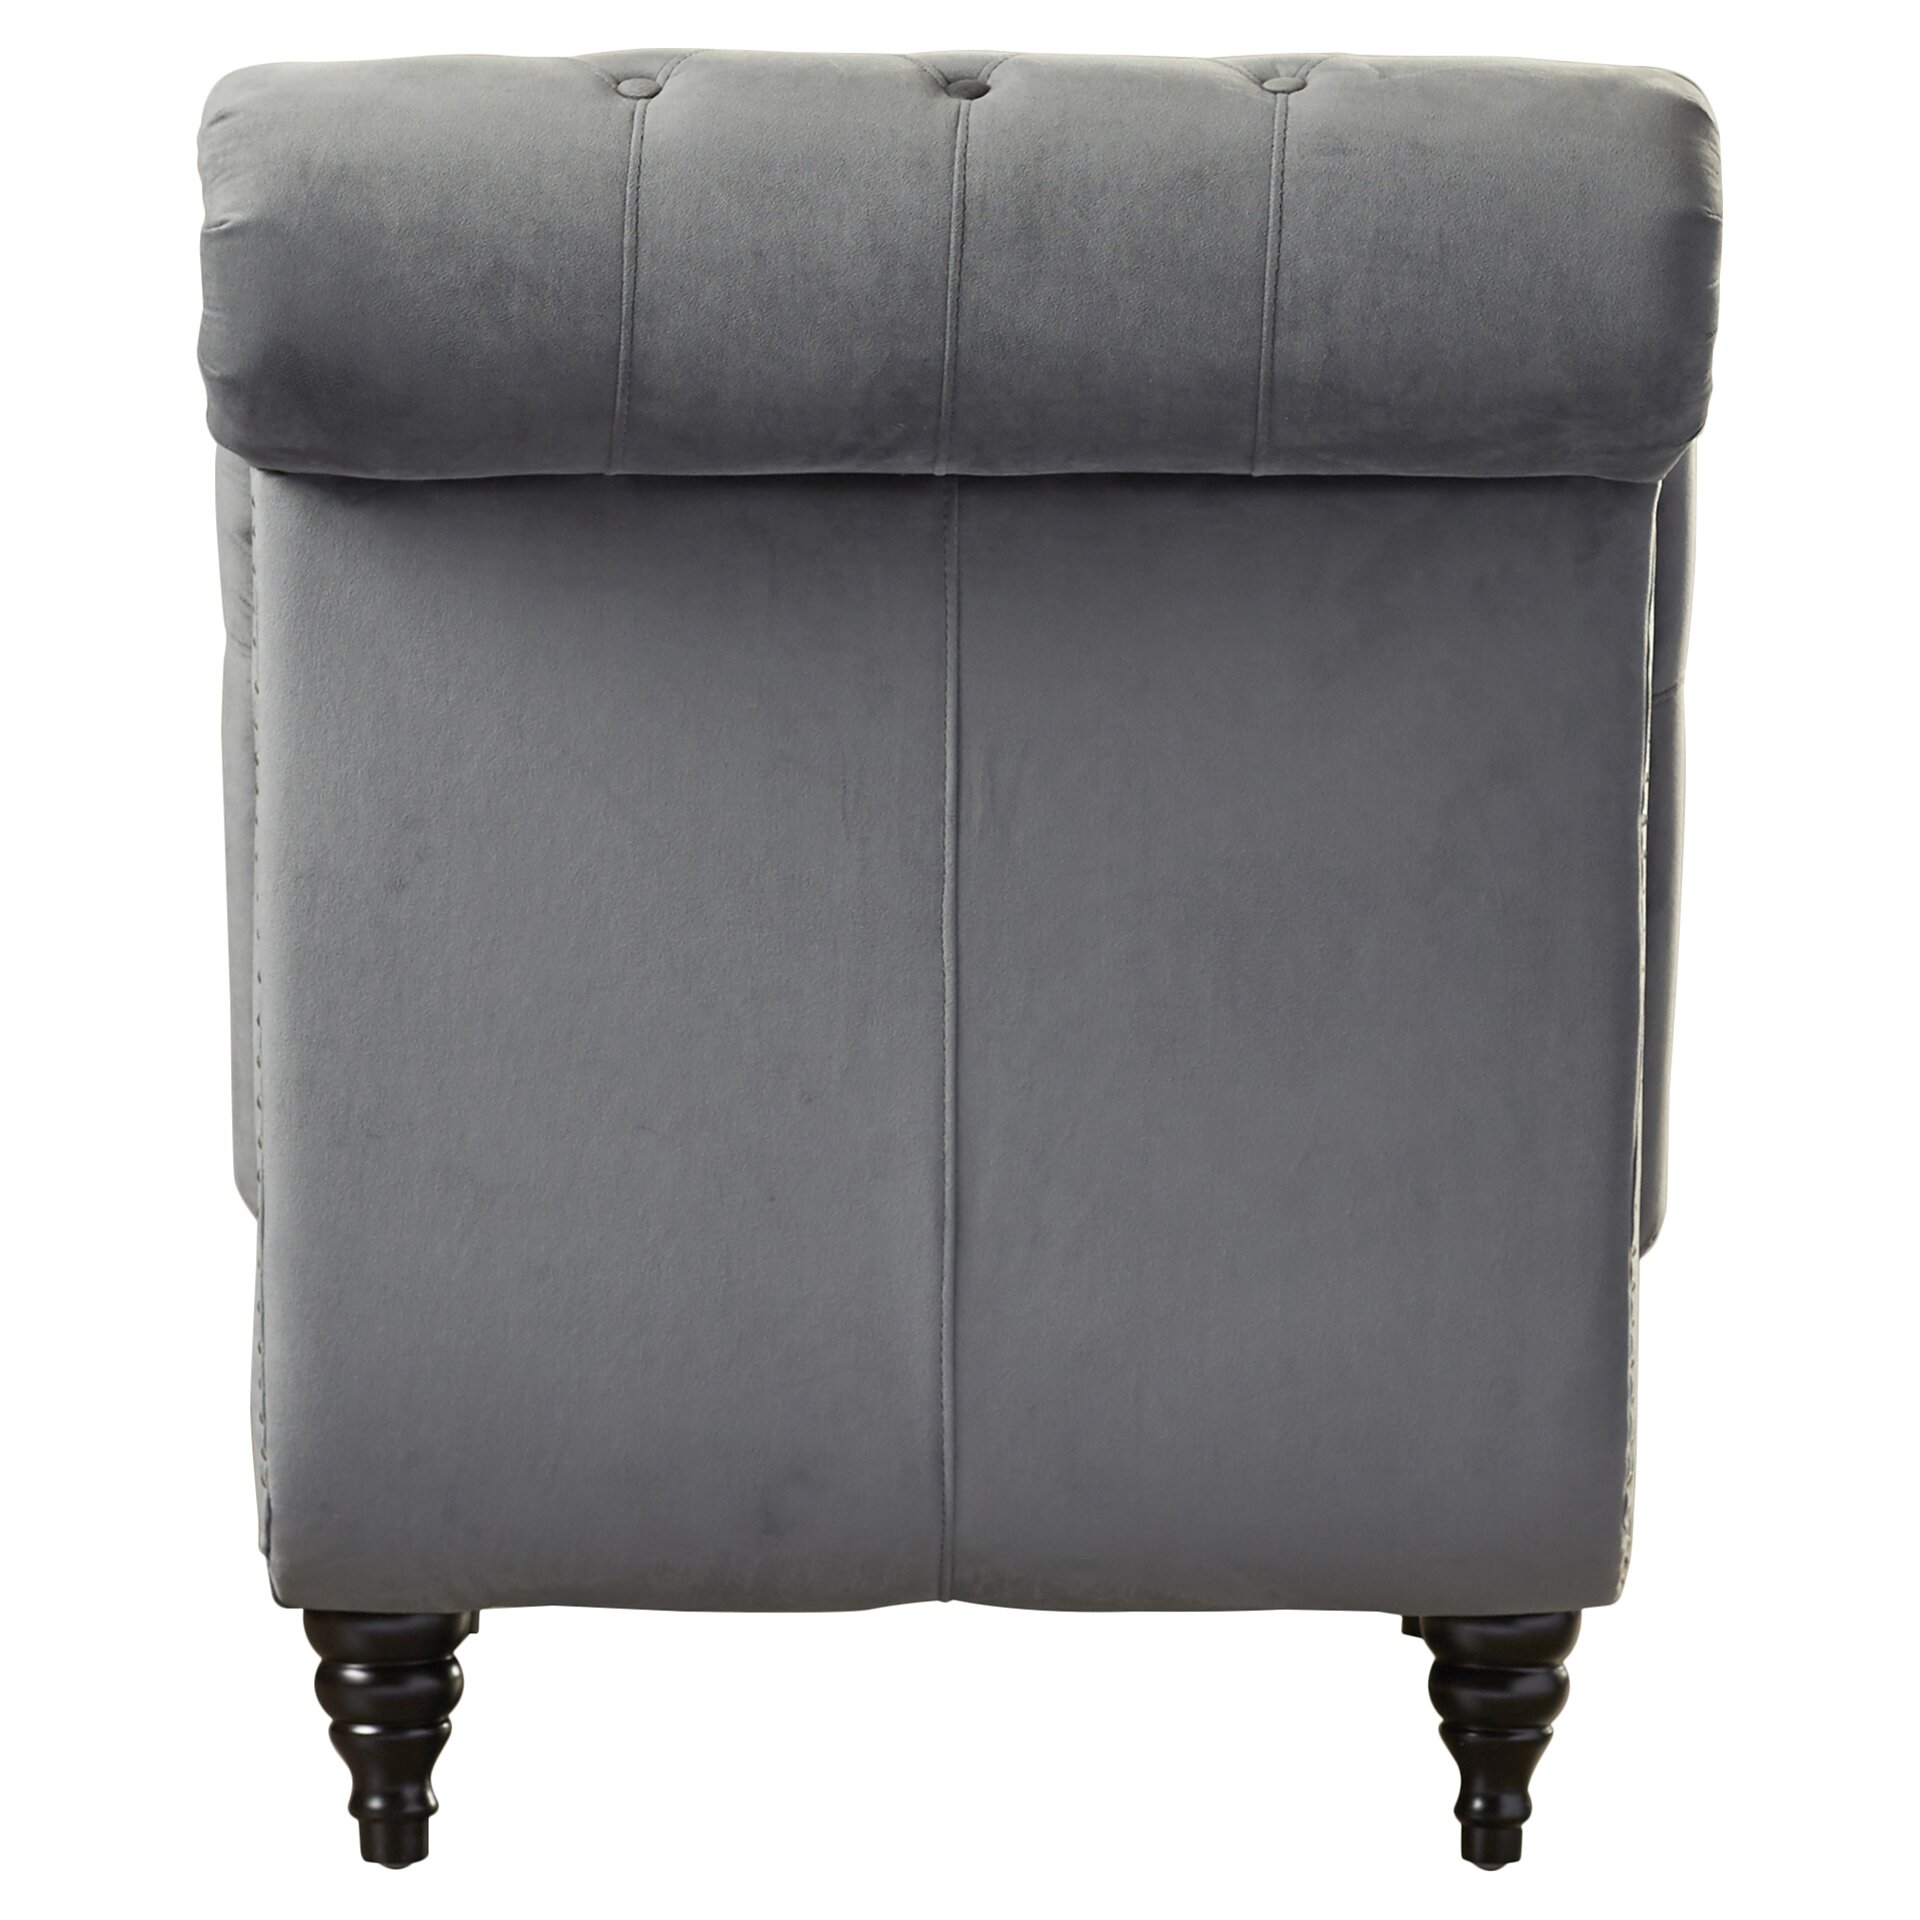 House of hampton kirkby chaise lounge reviews wayfair for P a furniture kirkby